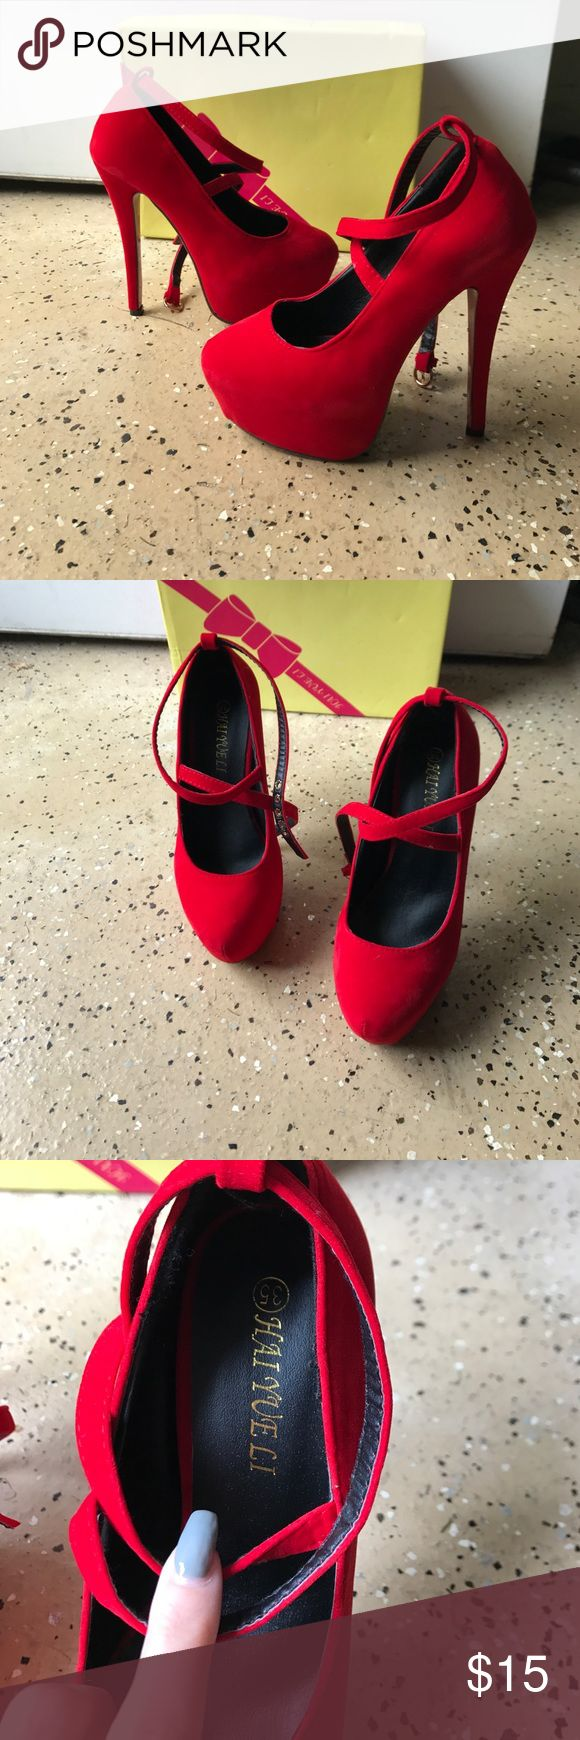 red velour heels with red bottom red velour heels with red bottom have cross cross straps and have only been worn one around the house never out | size 35 hai yu eli Shoes Heels